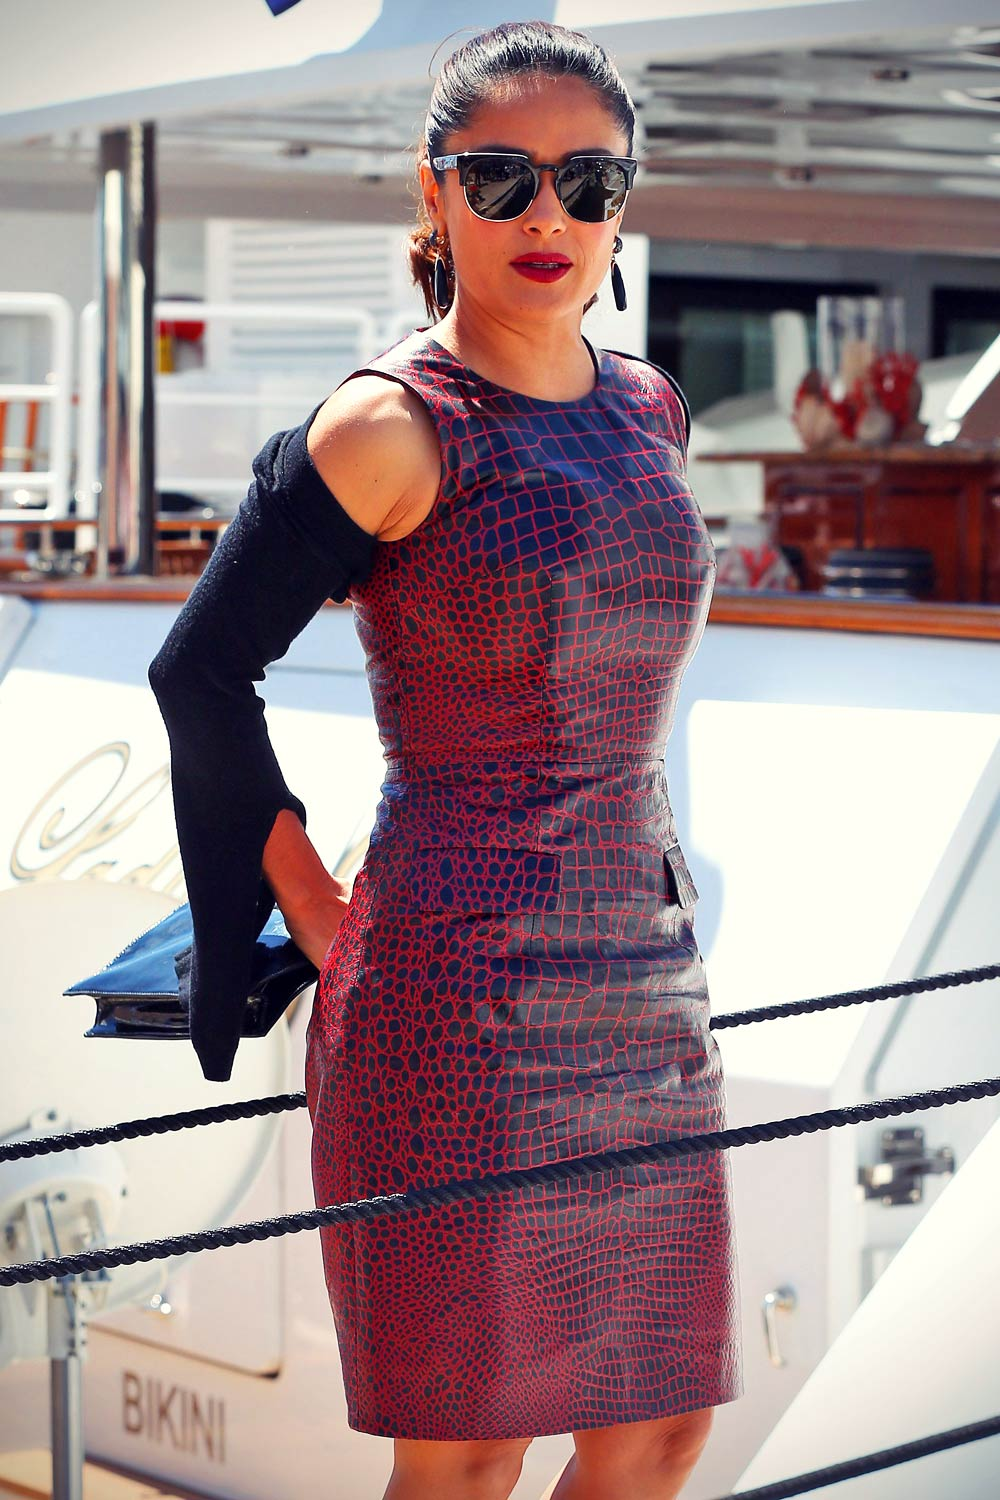 Salma Hayek arriving for a boat party in Cannes Harbour